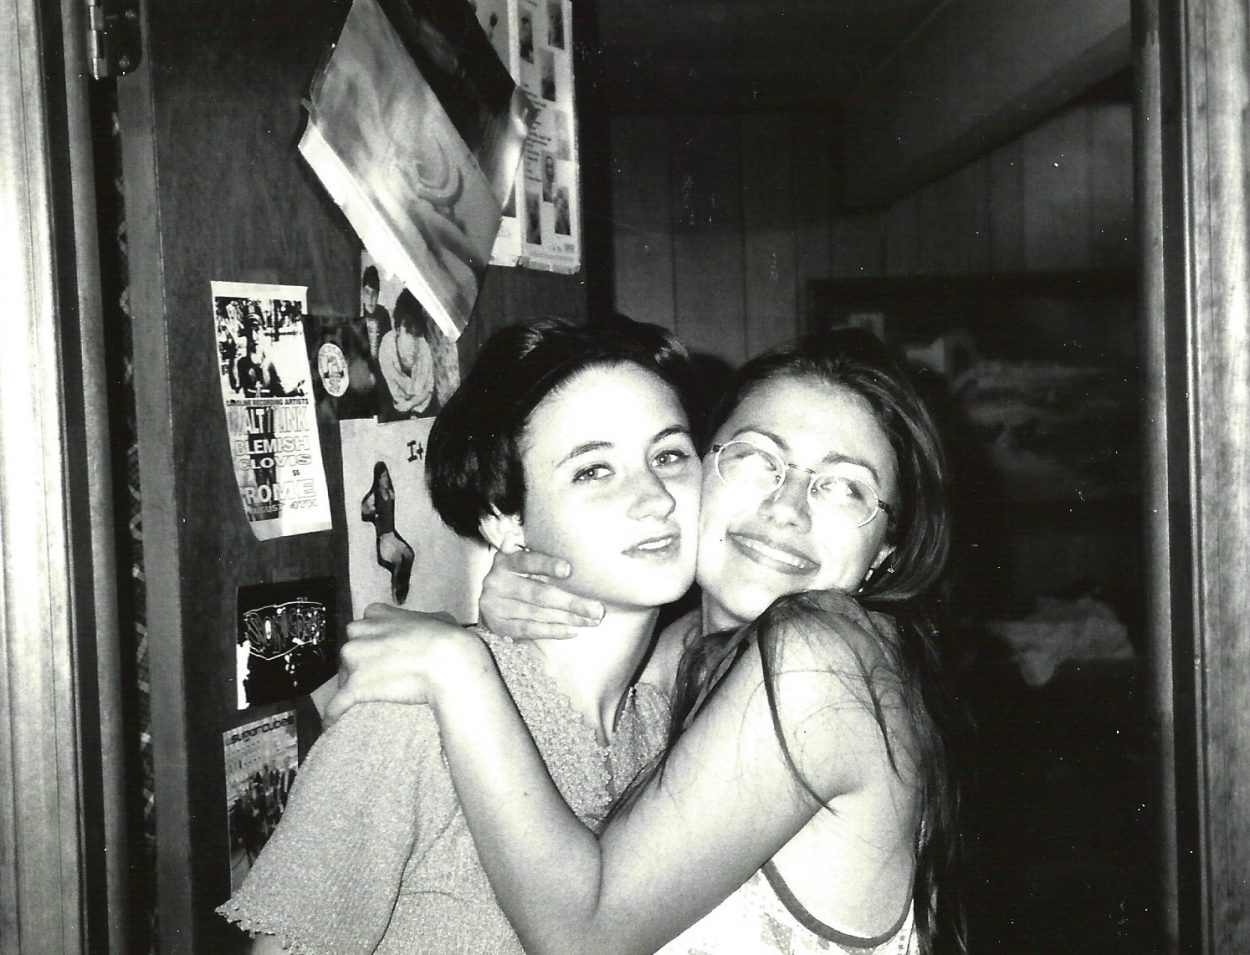 http://momspark.net/wp-content/uploads/2013/10/amy-and-annette-bw-pic.jpg